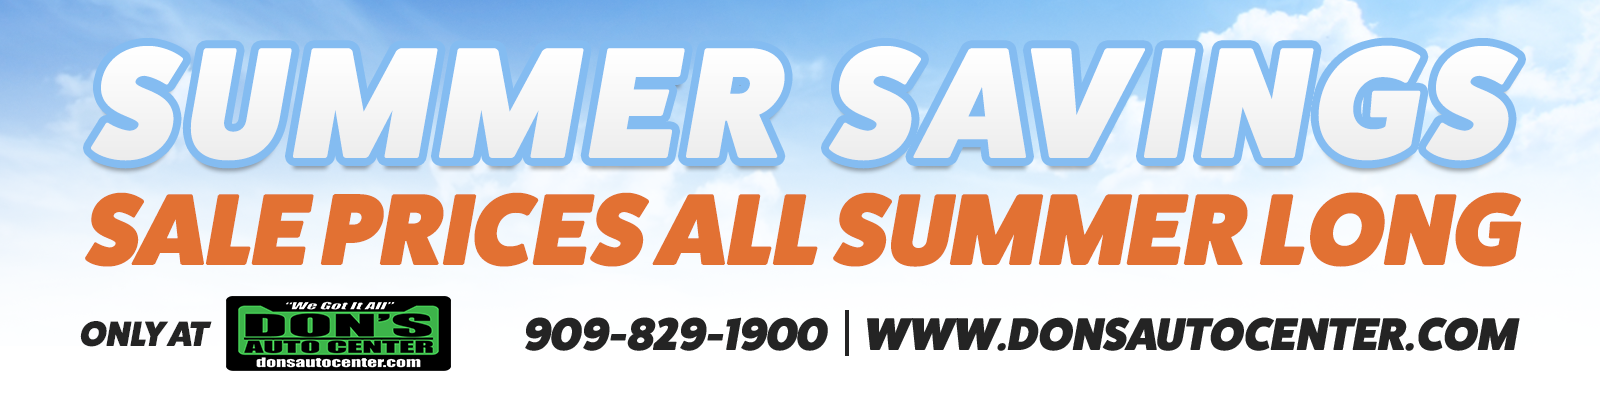 Summer savings on all your favorite makes & models! Only at Don's Auto Center.